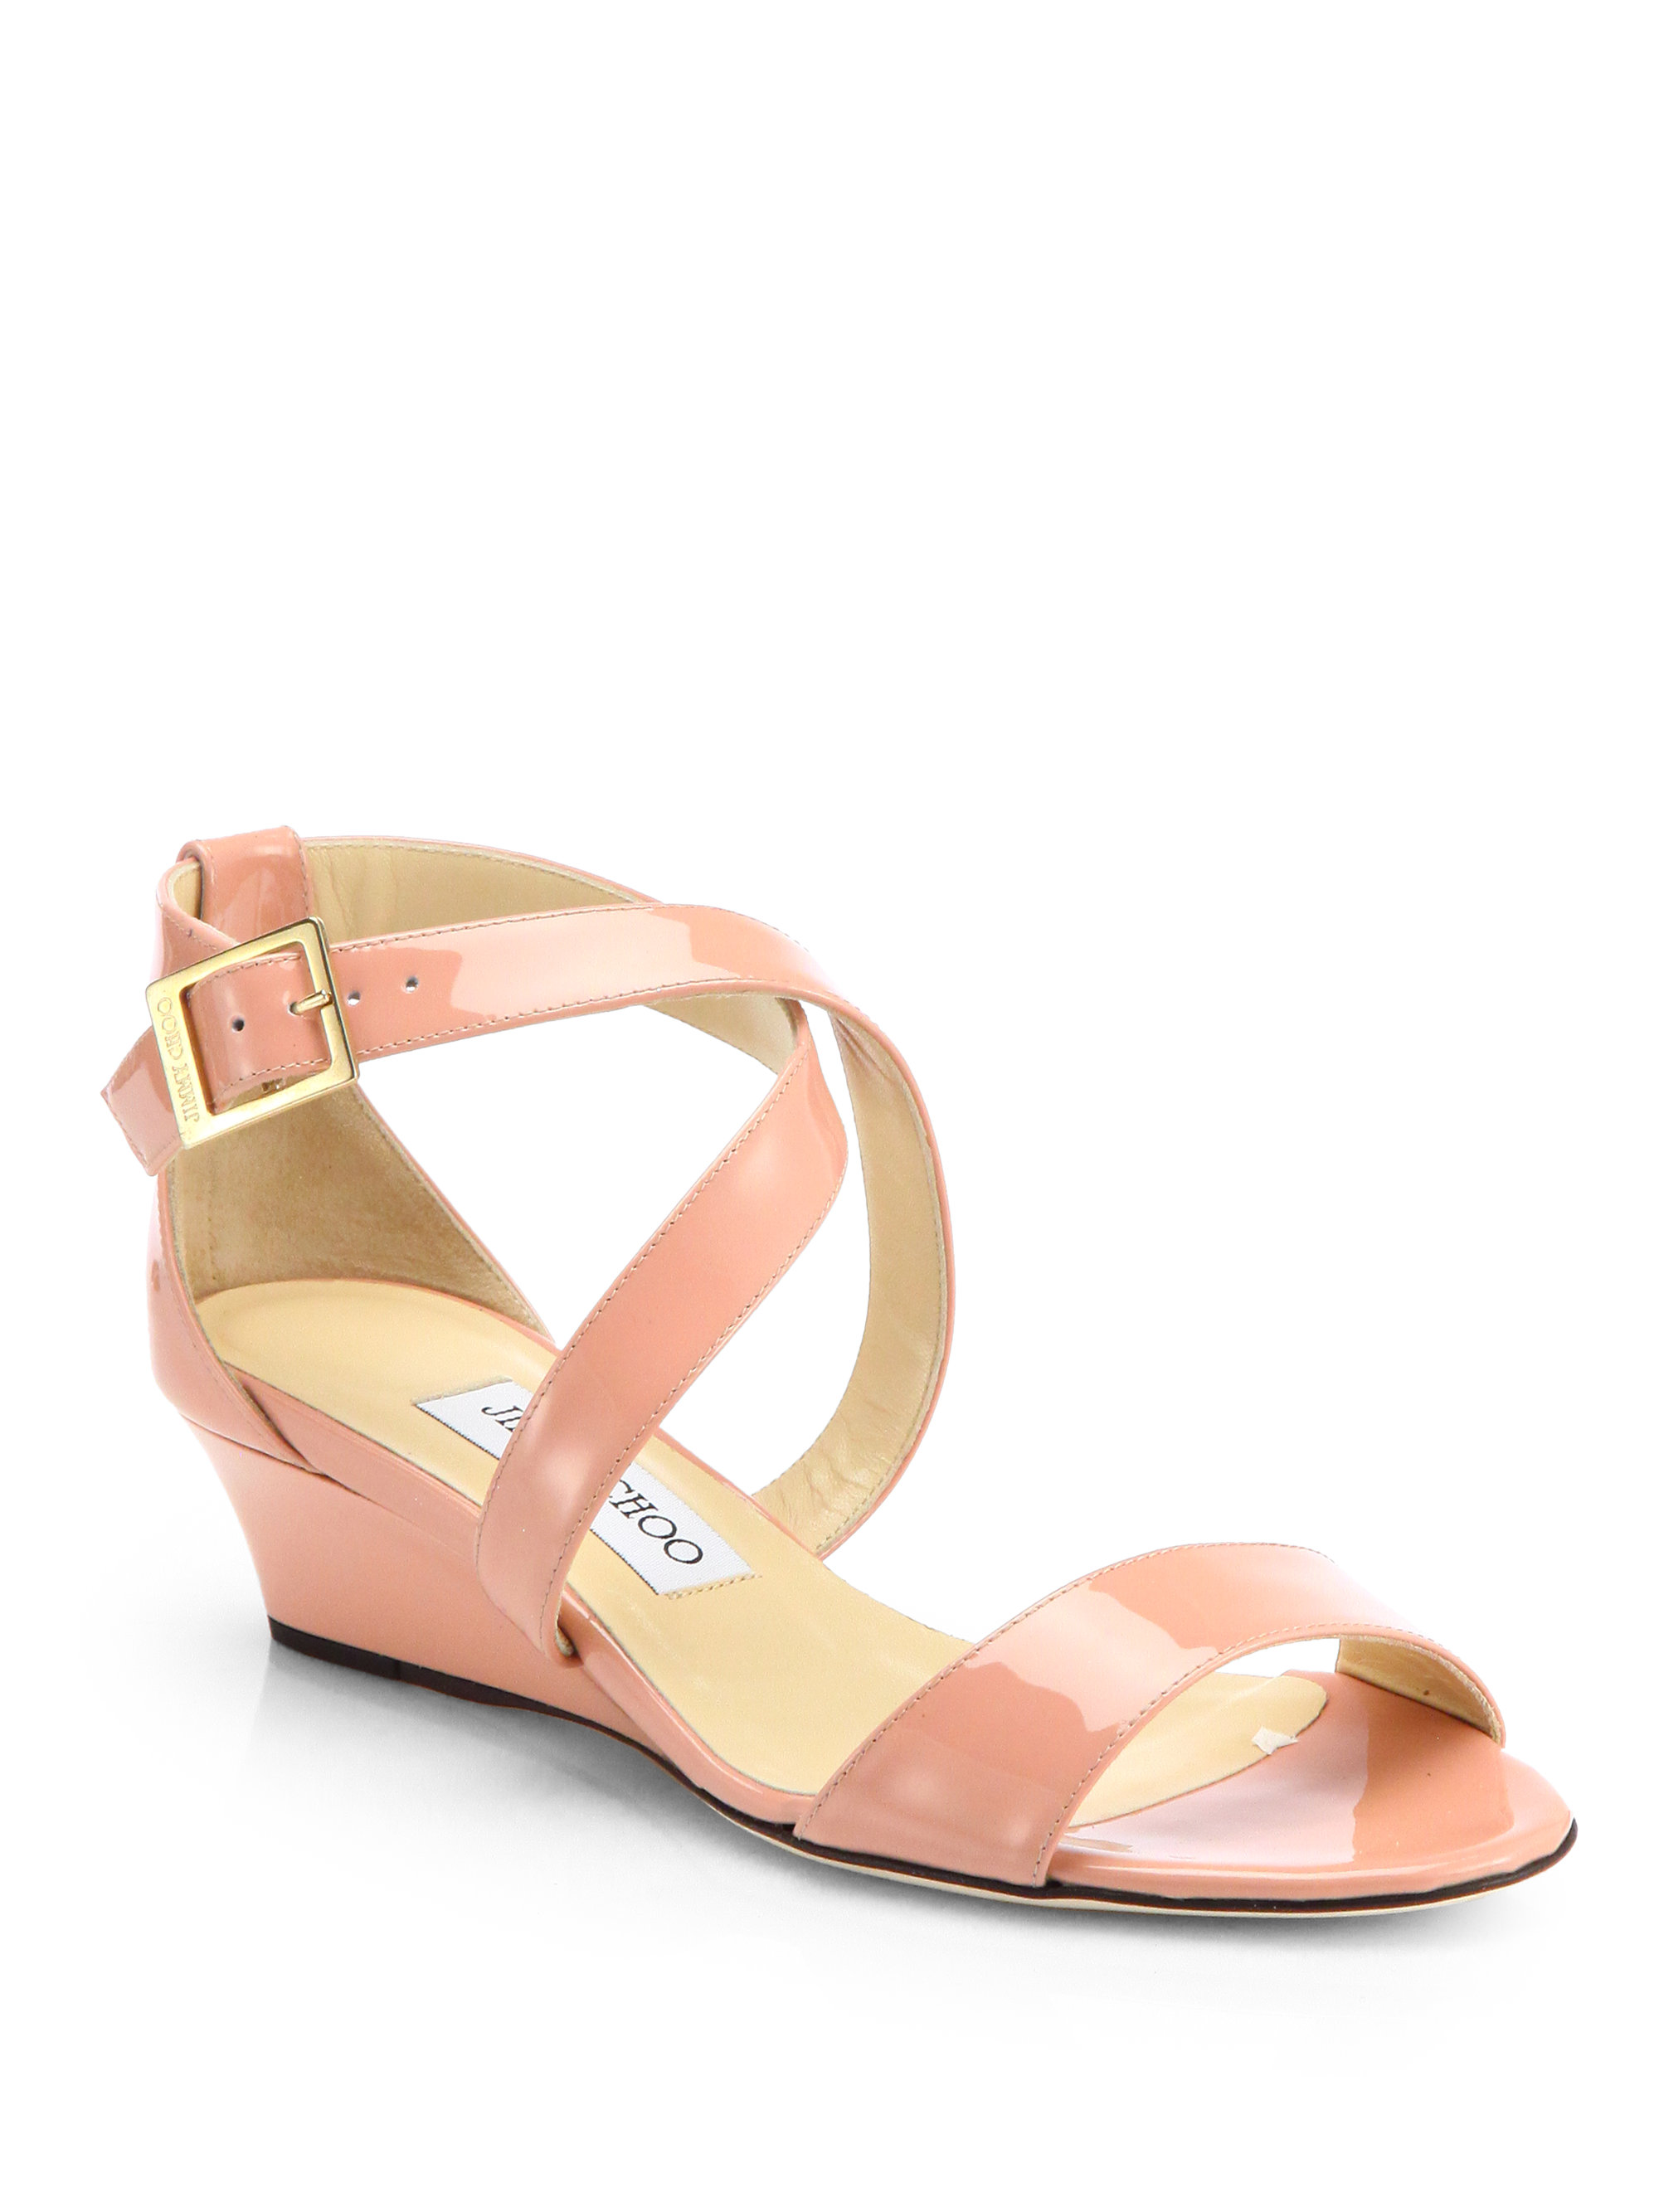 jimmy choo chiara patent leather wedge sandals in pink